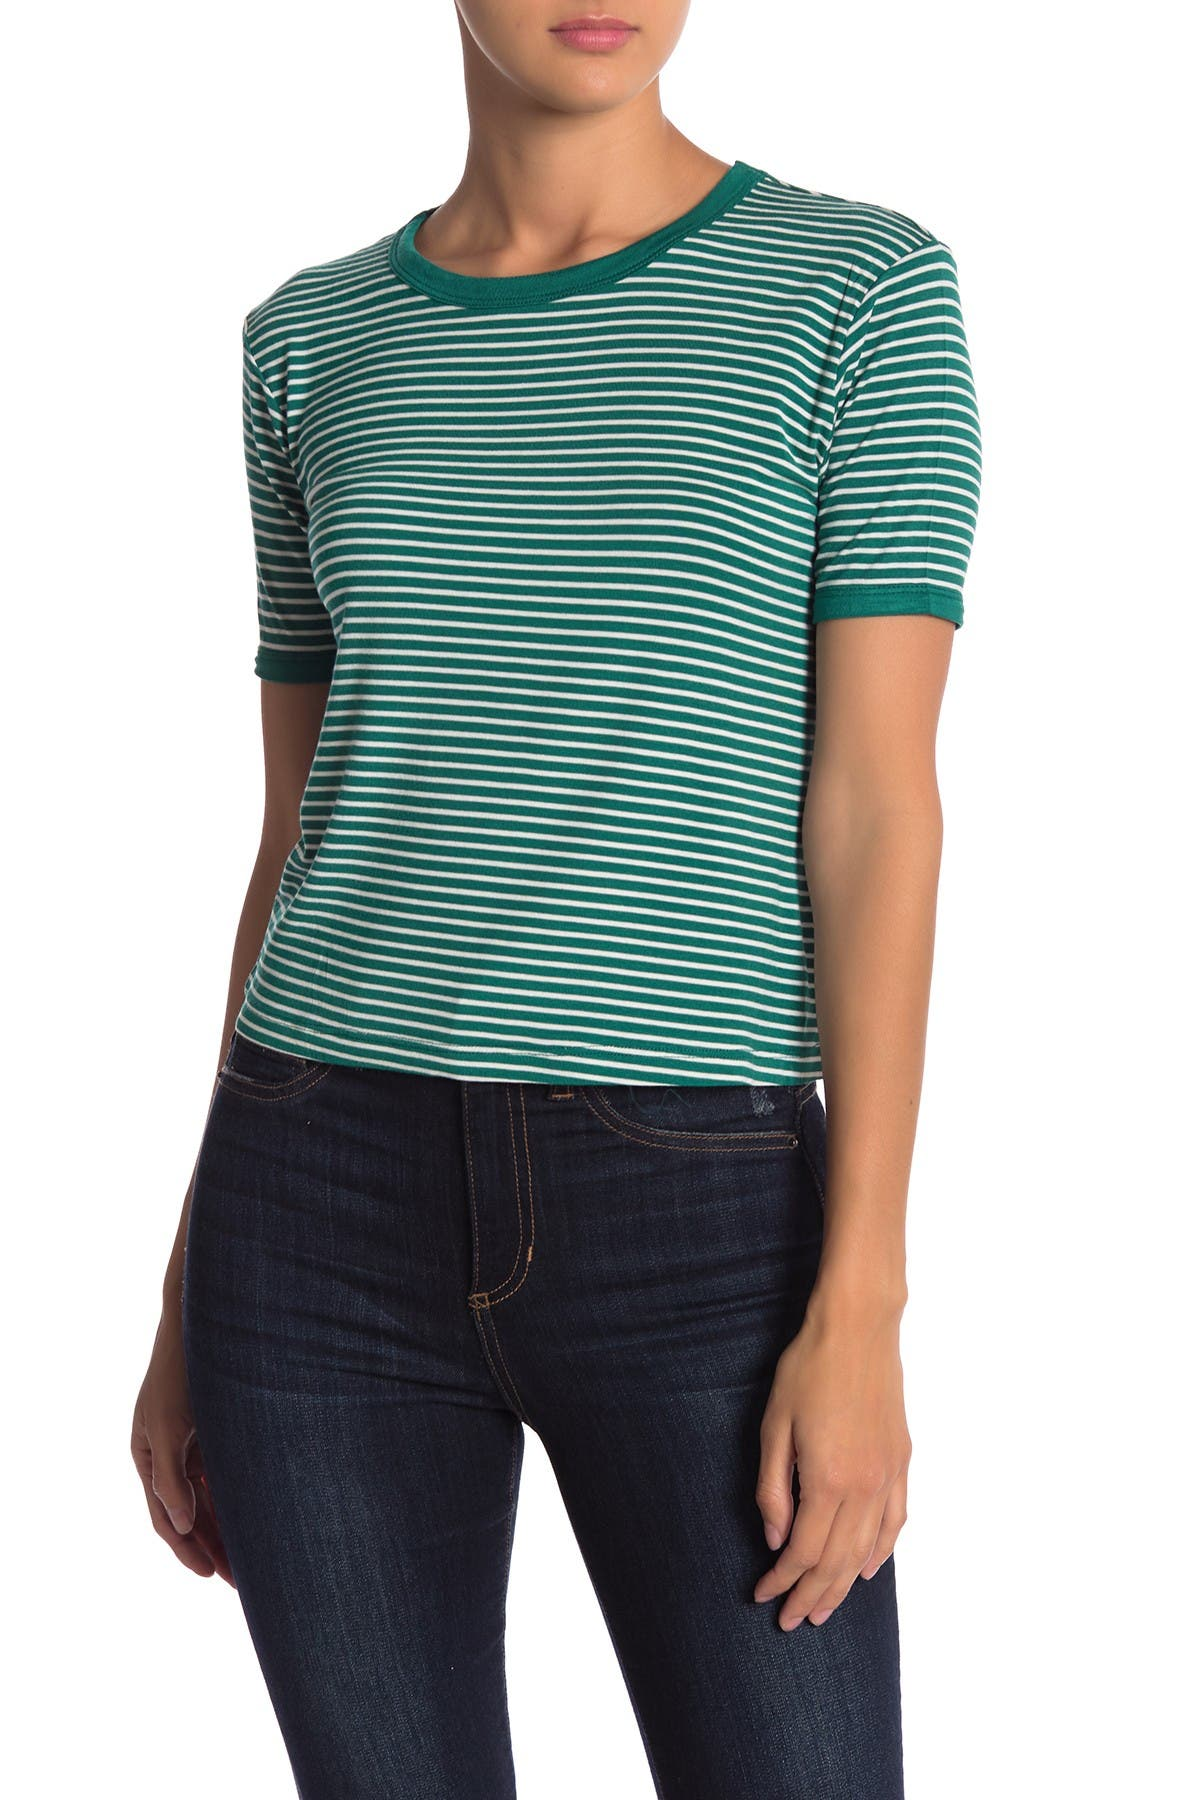 Image of LIME BLUE Striped Crew Neck T-Shirt